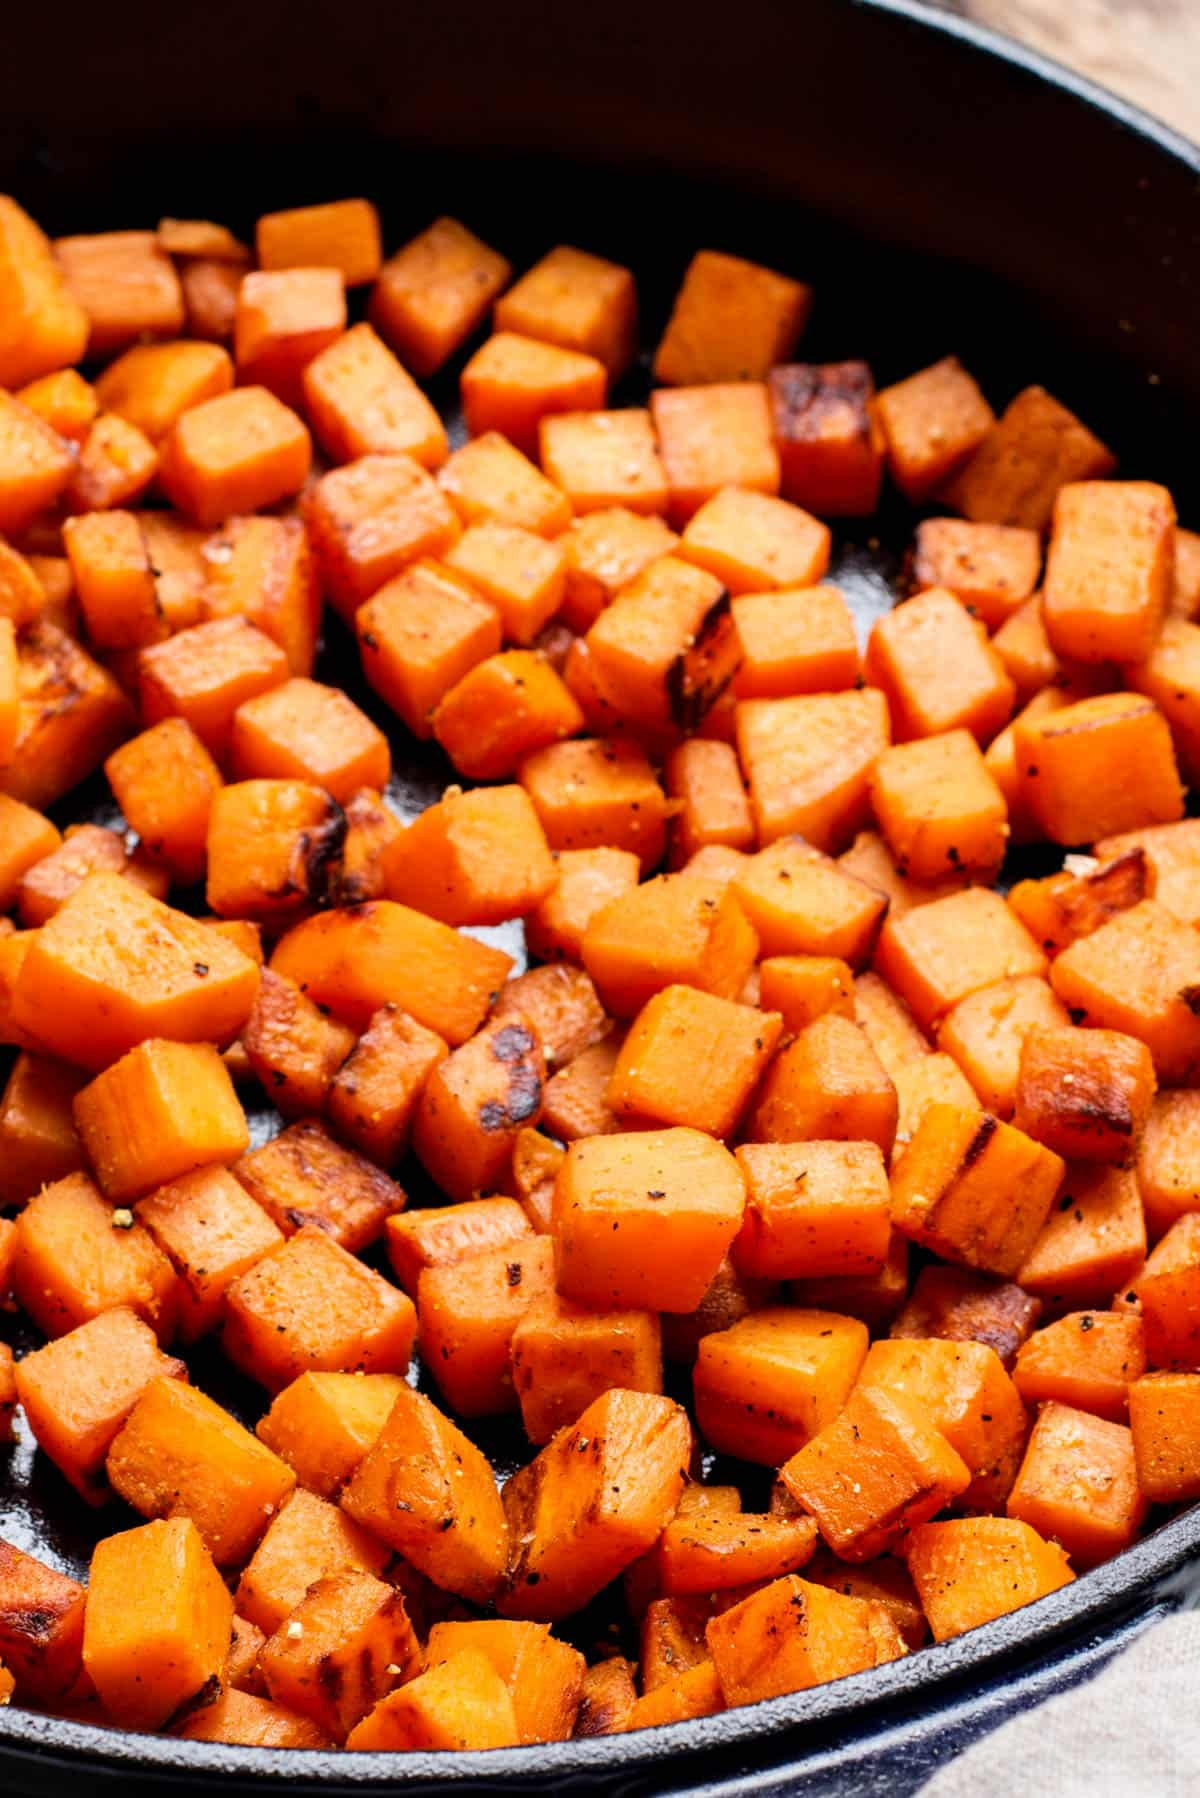 sweet potatoes cooked in a skillet